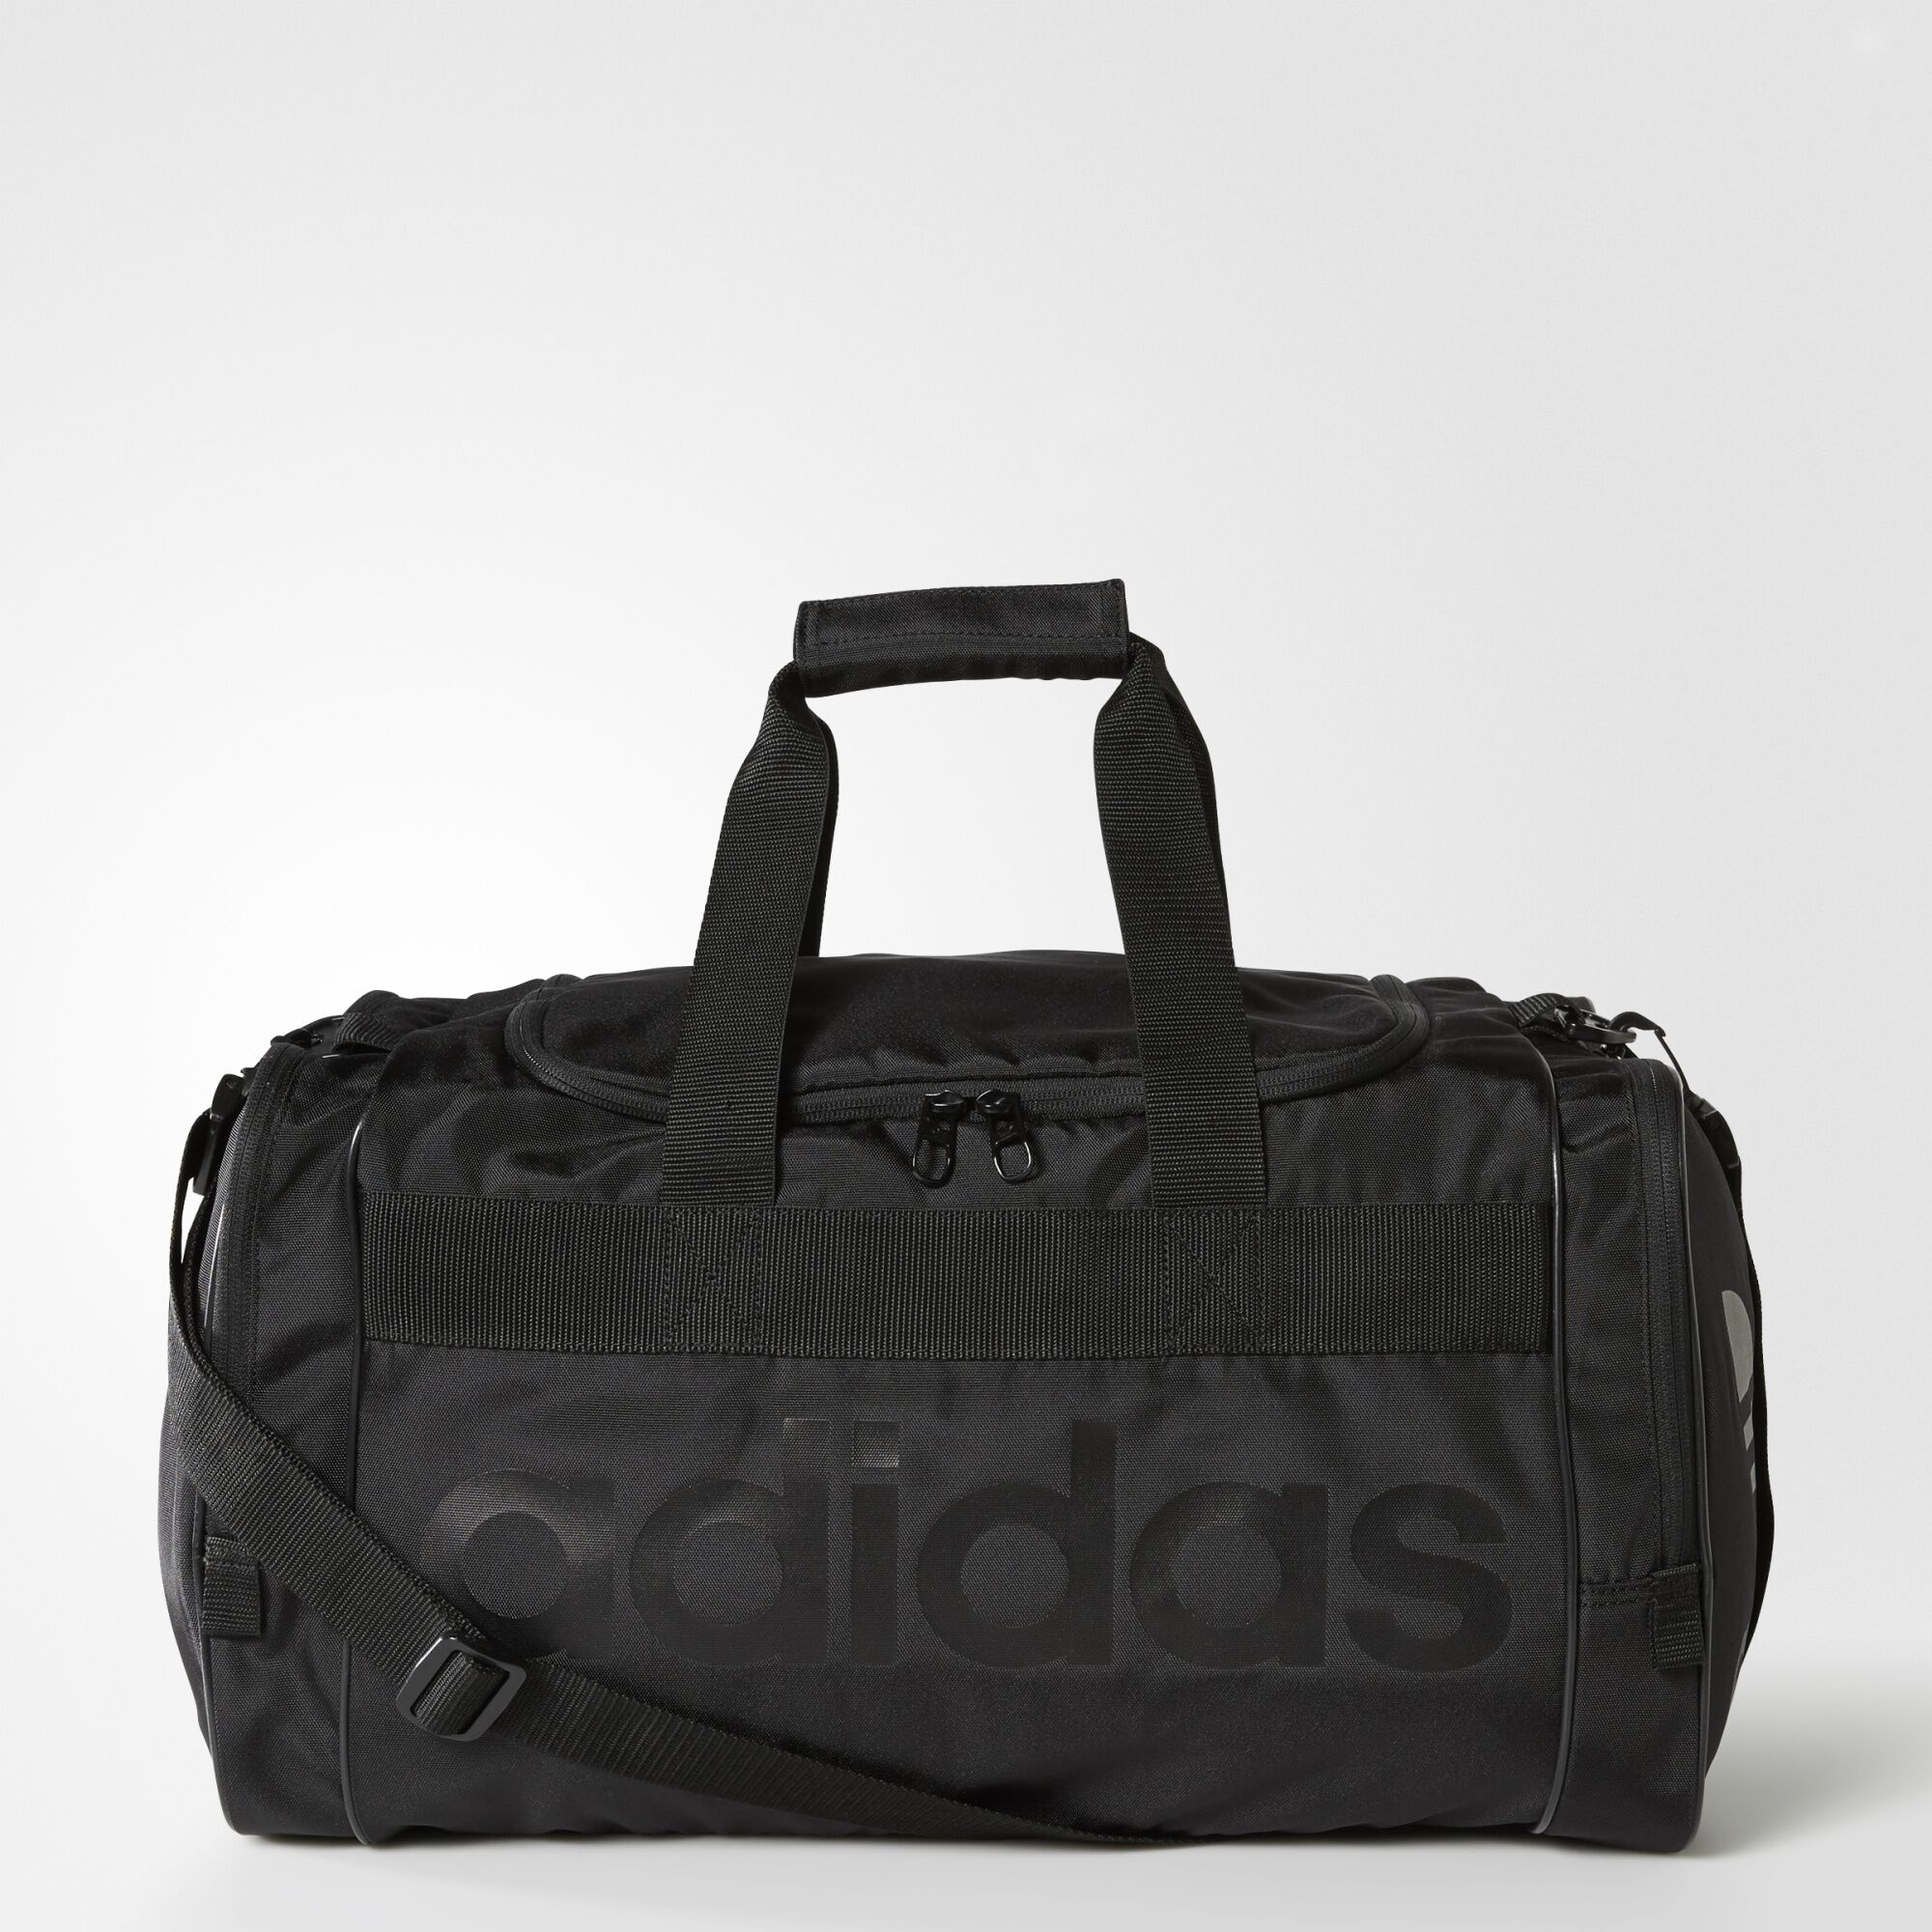 8c225b087df3 Buy adidas mens bag   OFF55% Discounted